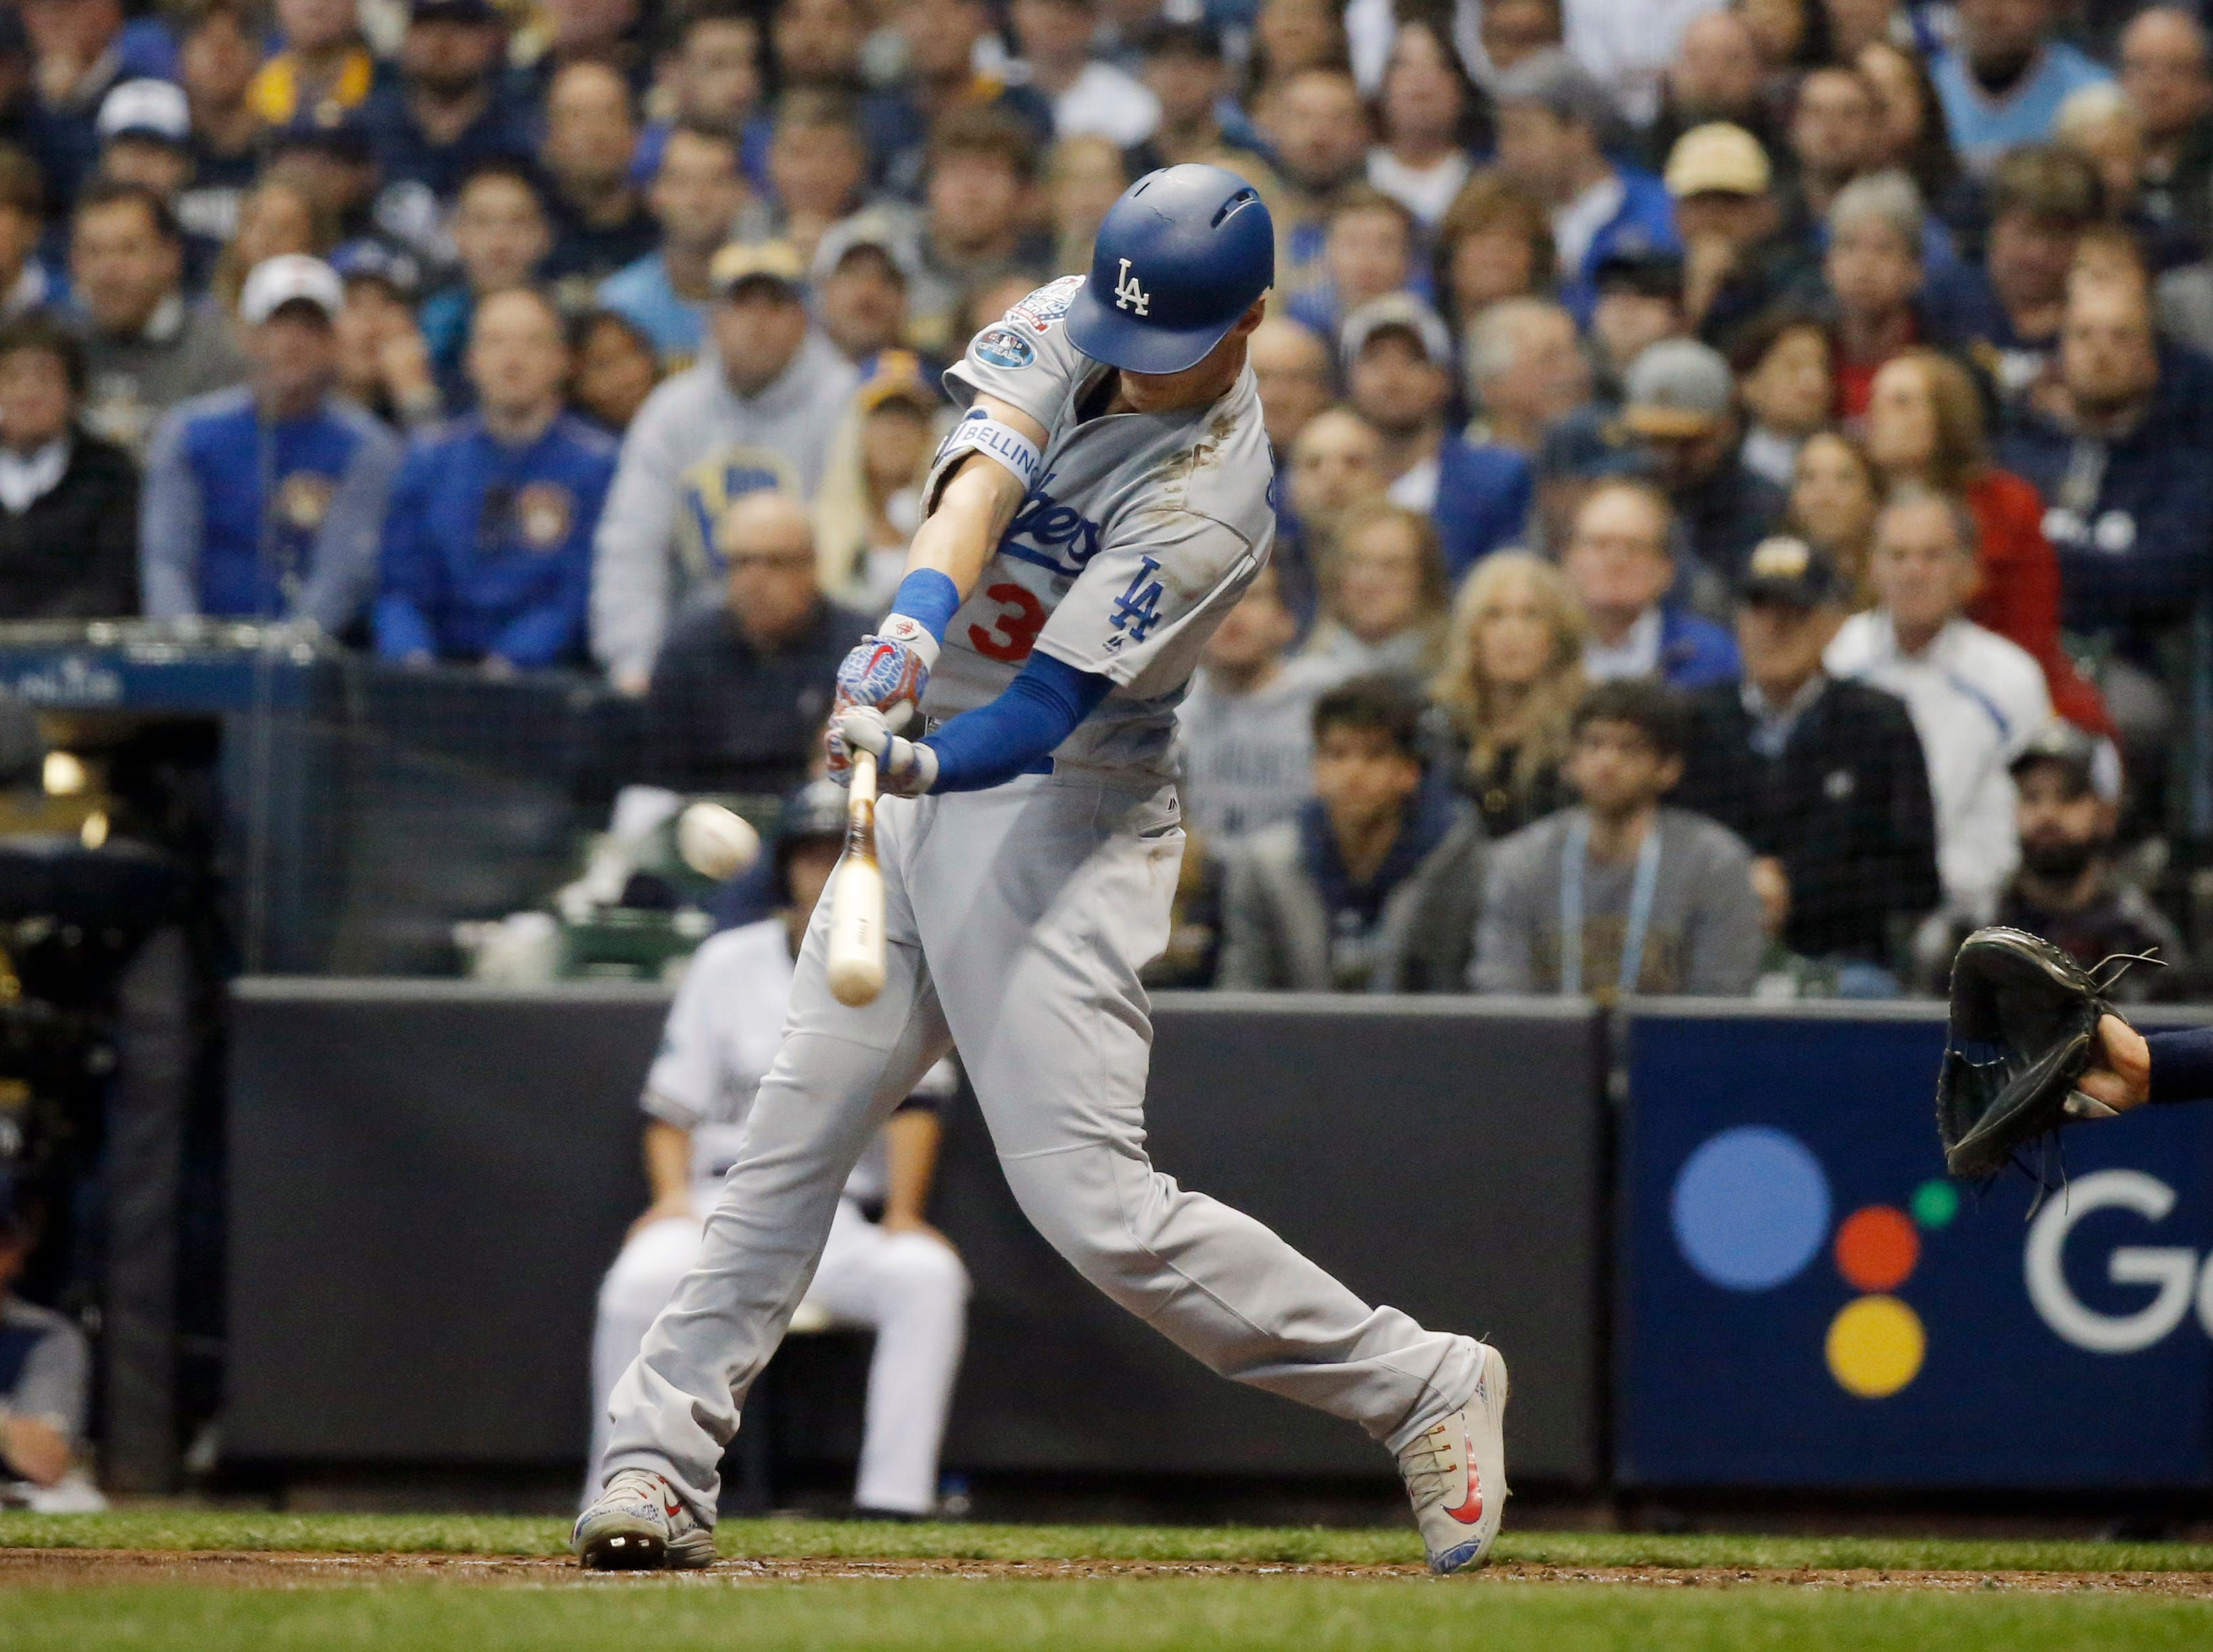 NLCS Game 7: Cody Bellinger hits a two-run homer in the second inning.